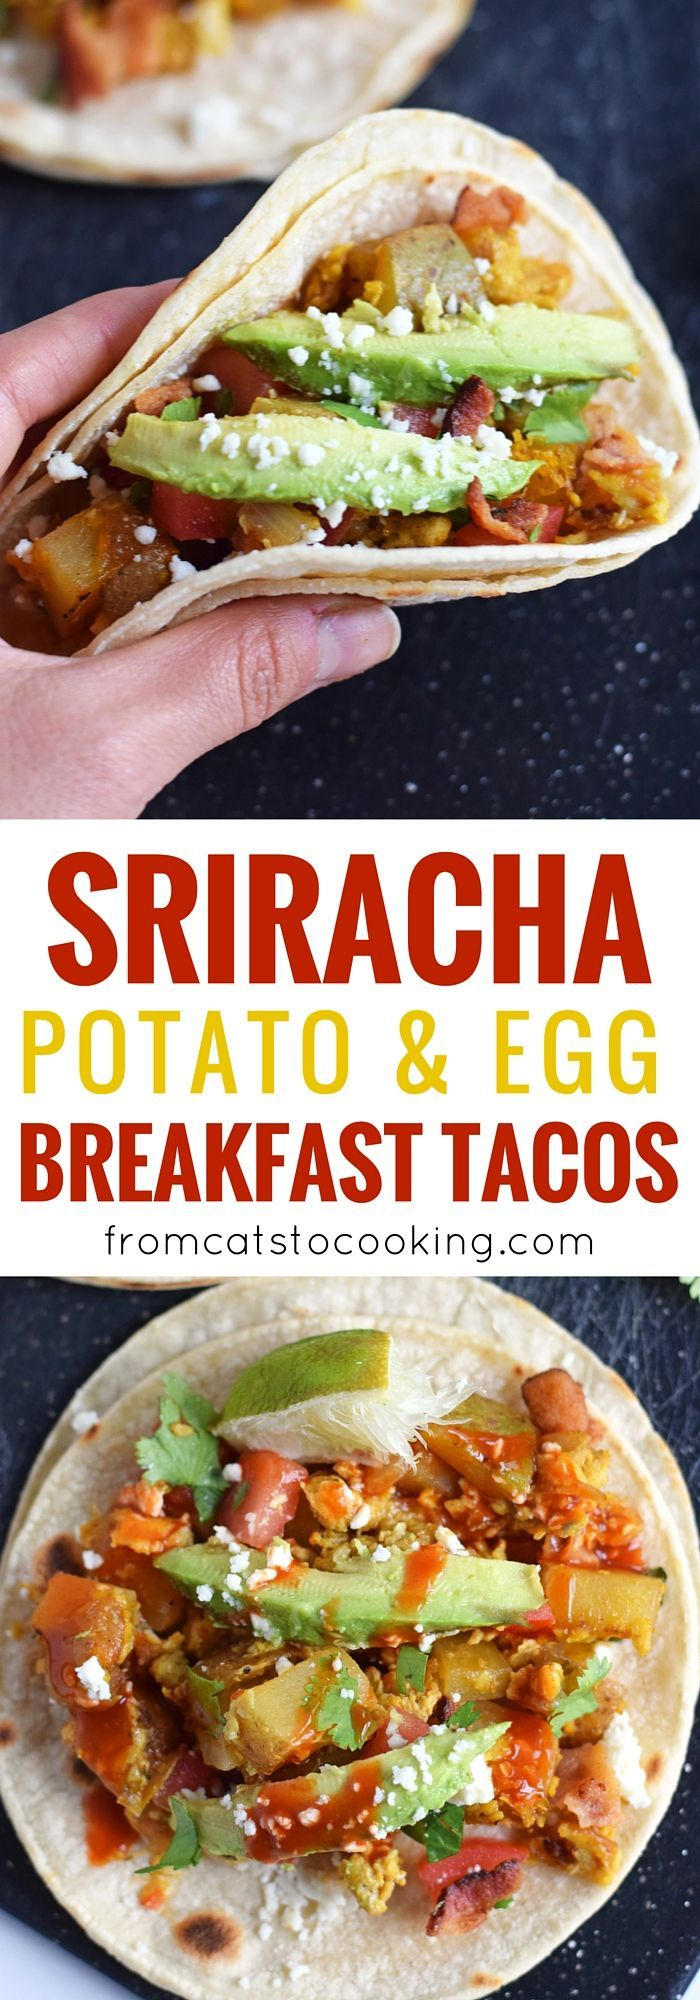 These Sriracha Potato & Egg Breakfast Tacos are the perfect brunch dish that everyone can enjoy. They're Mexican inspired with a little Thai flare. They're easily made vegetarian by omitting the bacon, are gluten free, paleo and pretty freakin' tasty! // fromcatstocooking...